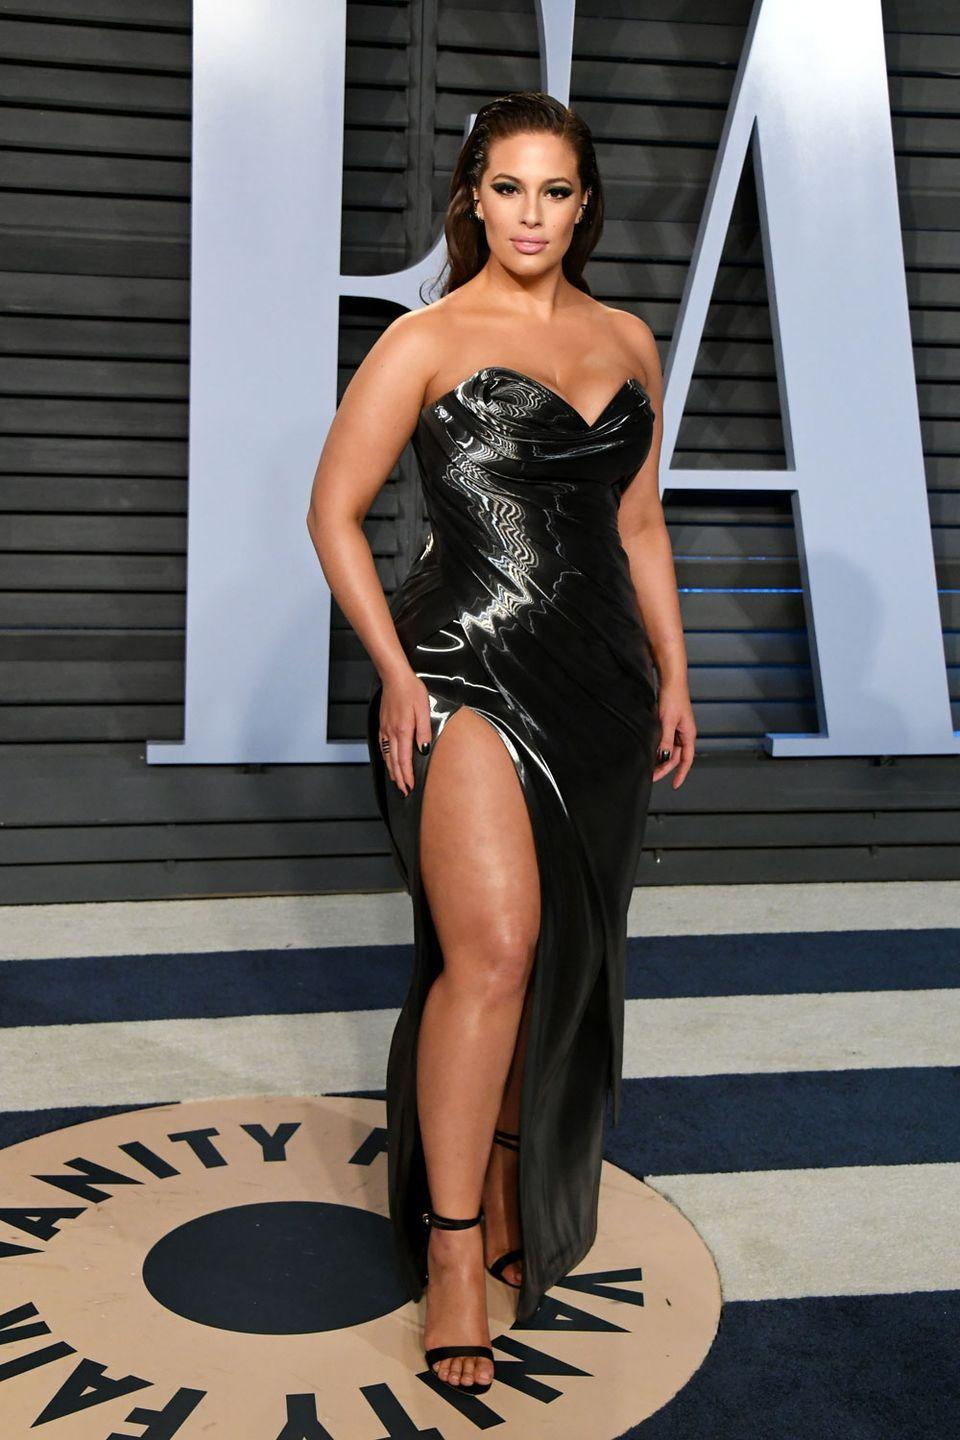 <p>At the 2018 Vanity Fair Oscars Party: Ashley looked incredible at Vanity Fair's 2018 Oscar party in this grey metallic dress with thigh-high split and corset style top. </p>